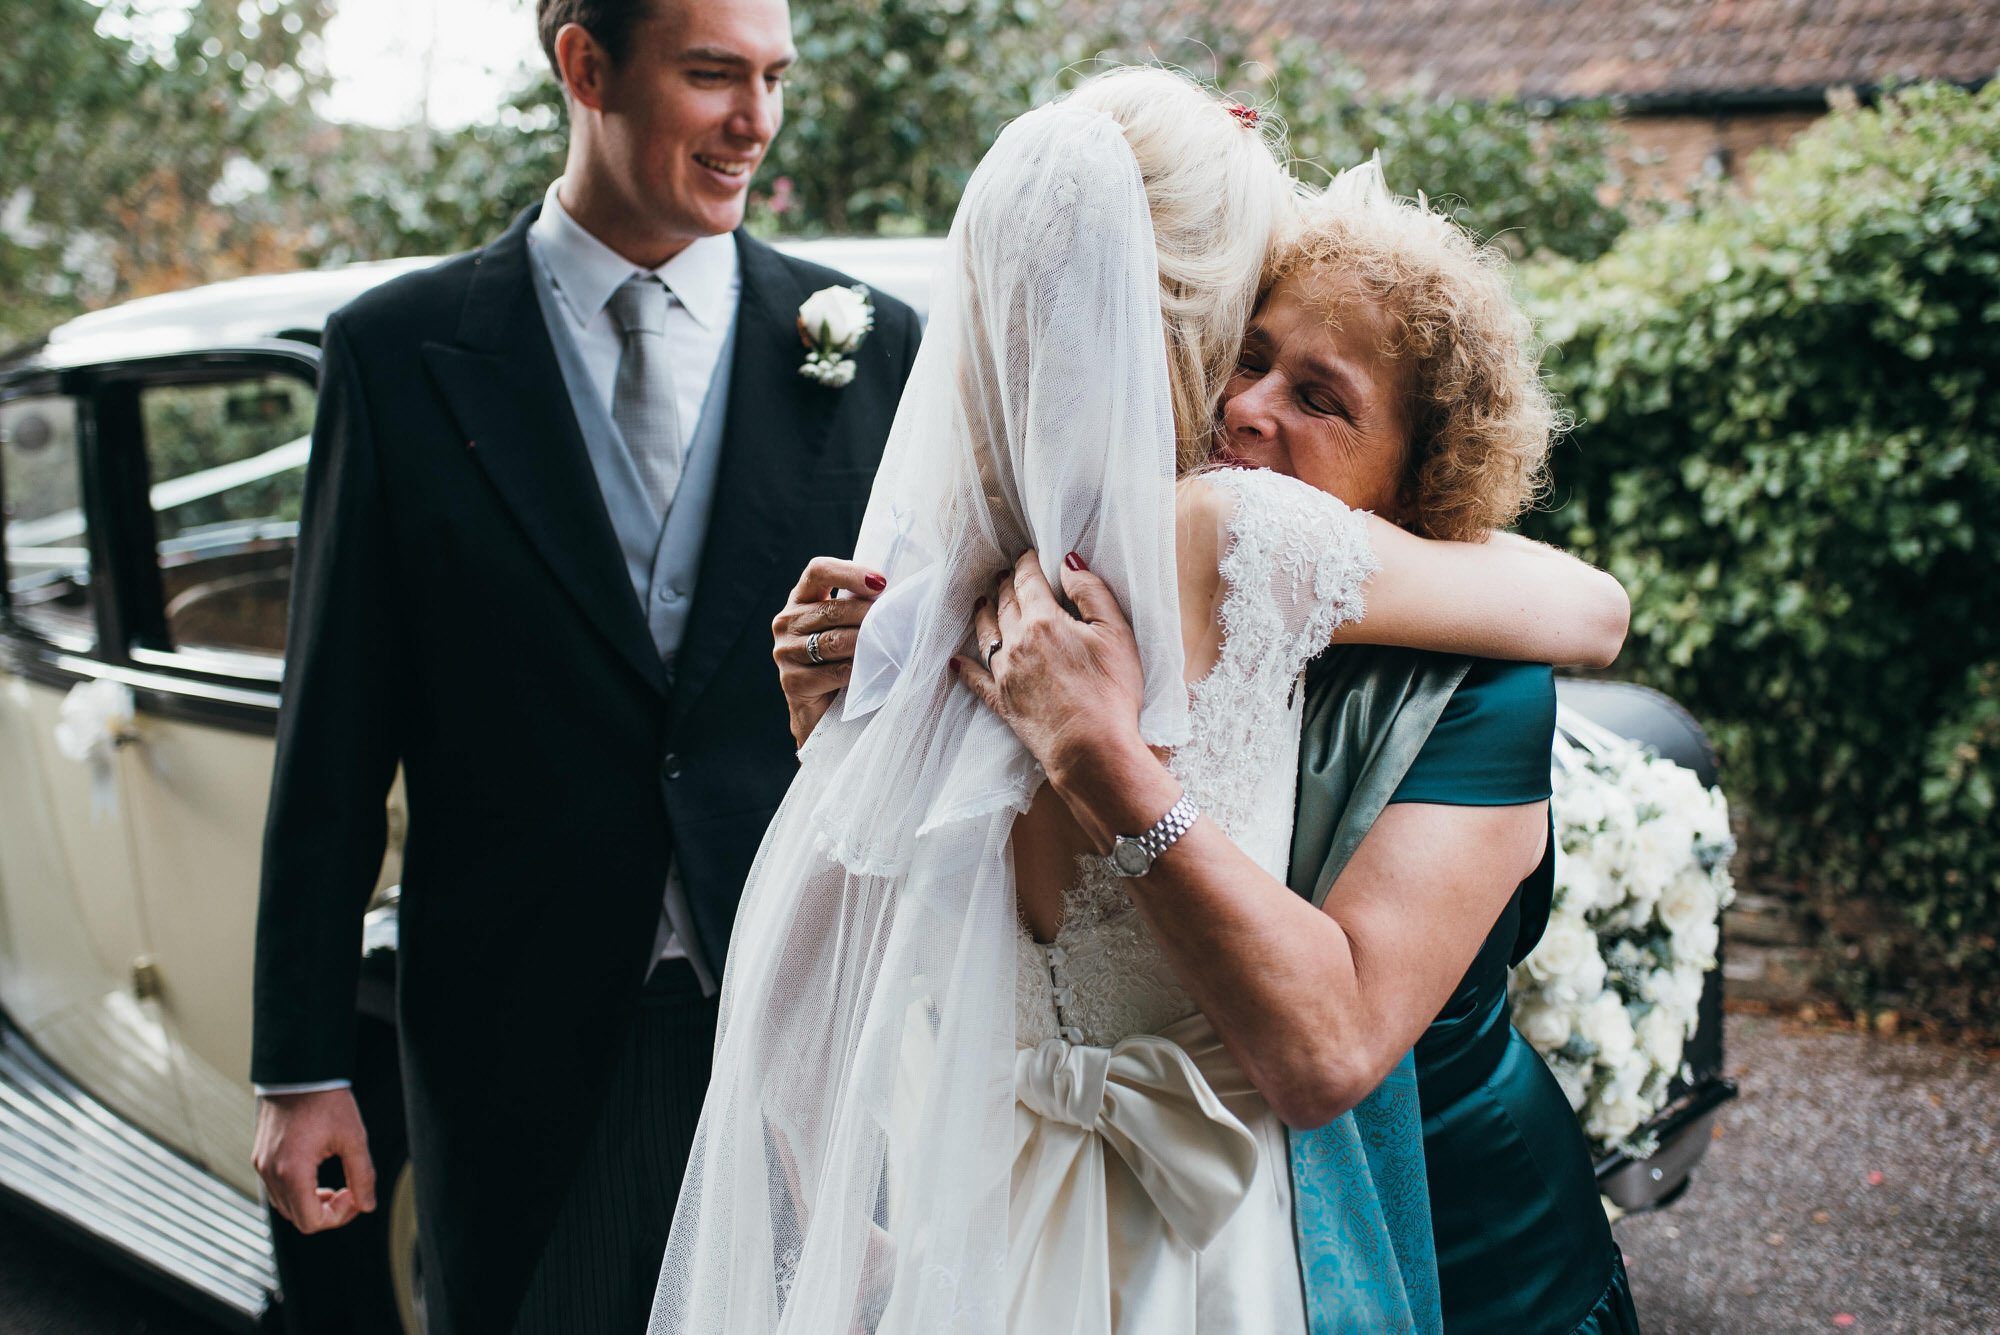 Crowcombe court wedding reception